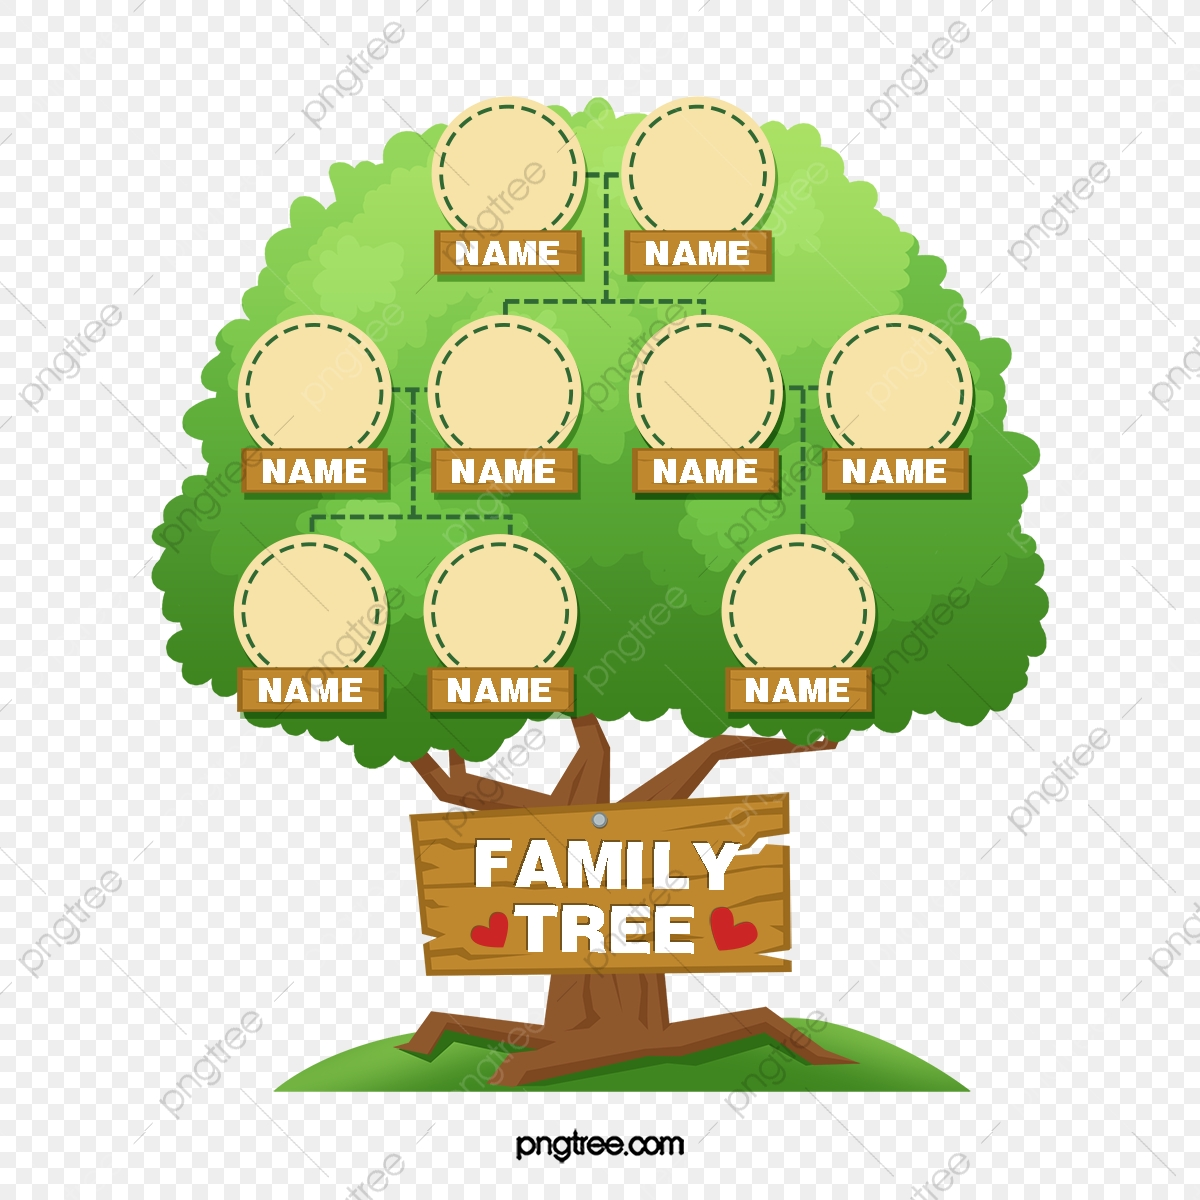 Tree Diagram Png Images Vector And Psd Files Free Download On Pngtree See more ideas about tree diagram, tree drawing, architecture drawing. https pngtree com freepng hand drawn family tree familytree family relationship family tree diagram 5333081 html